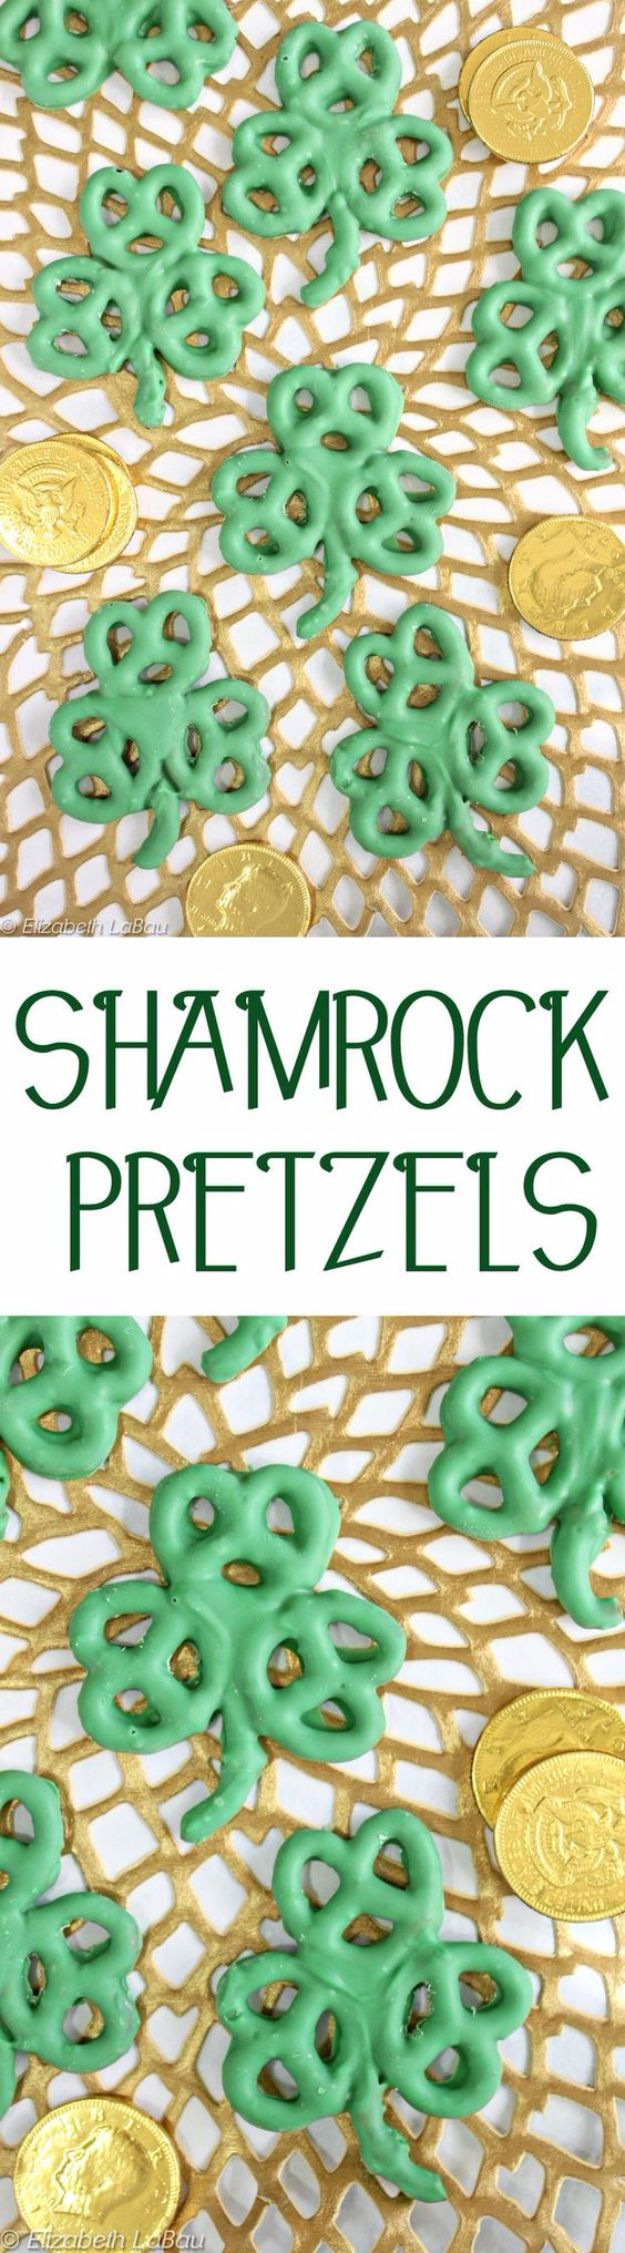 DIY St Patricks Day Ideas - 2 Ingredient Shamrock Pretzels - Food and Best Recipes, Decorations and Home Decor, Party Ideas - Cupcakes, Drinks, Festive St Patrick Day Parties With these Easy, Quick and Cool Crafts and DIY Projects http://diyjoy.com/st-patricks-day-ideas